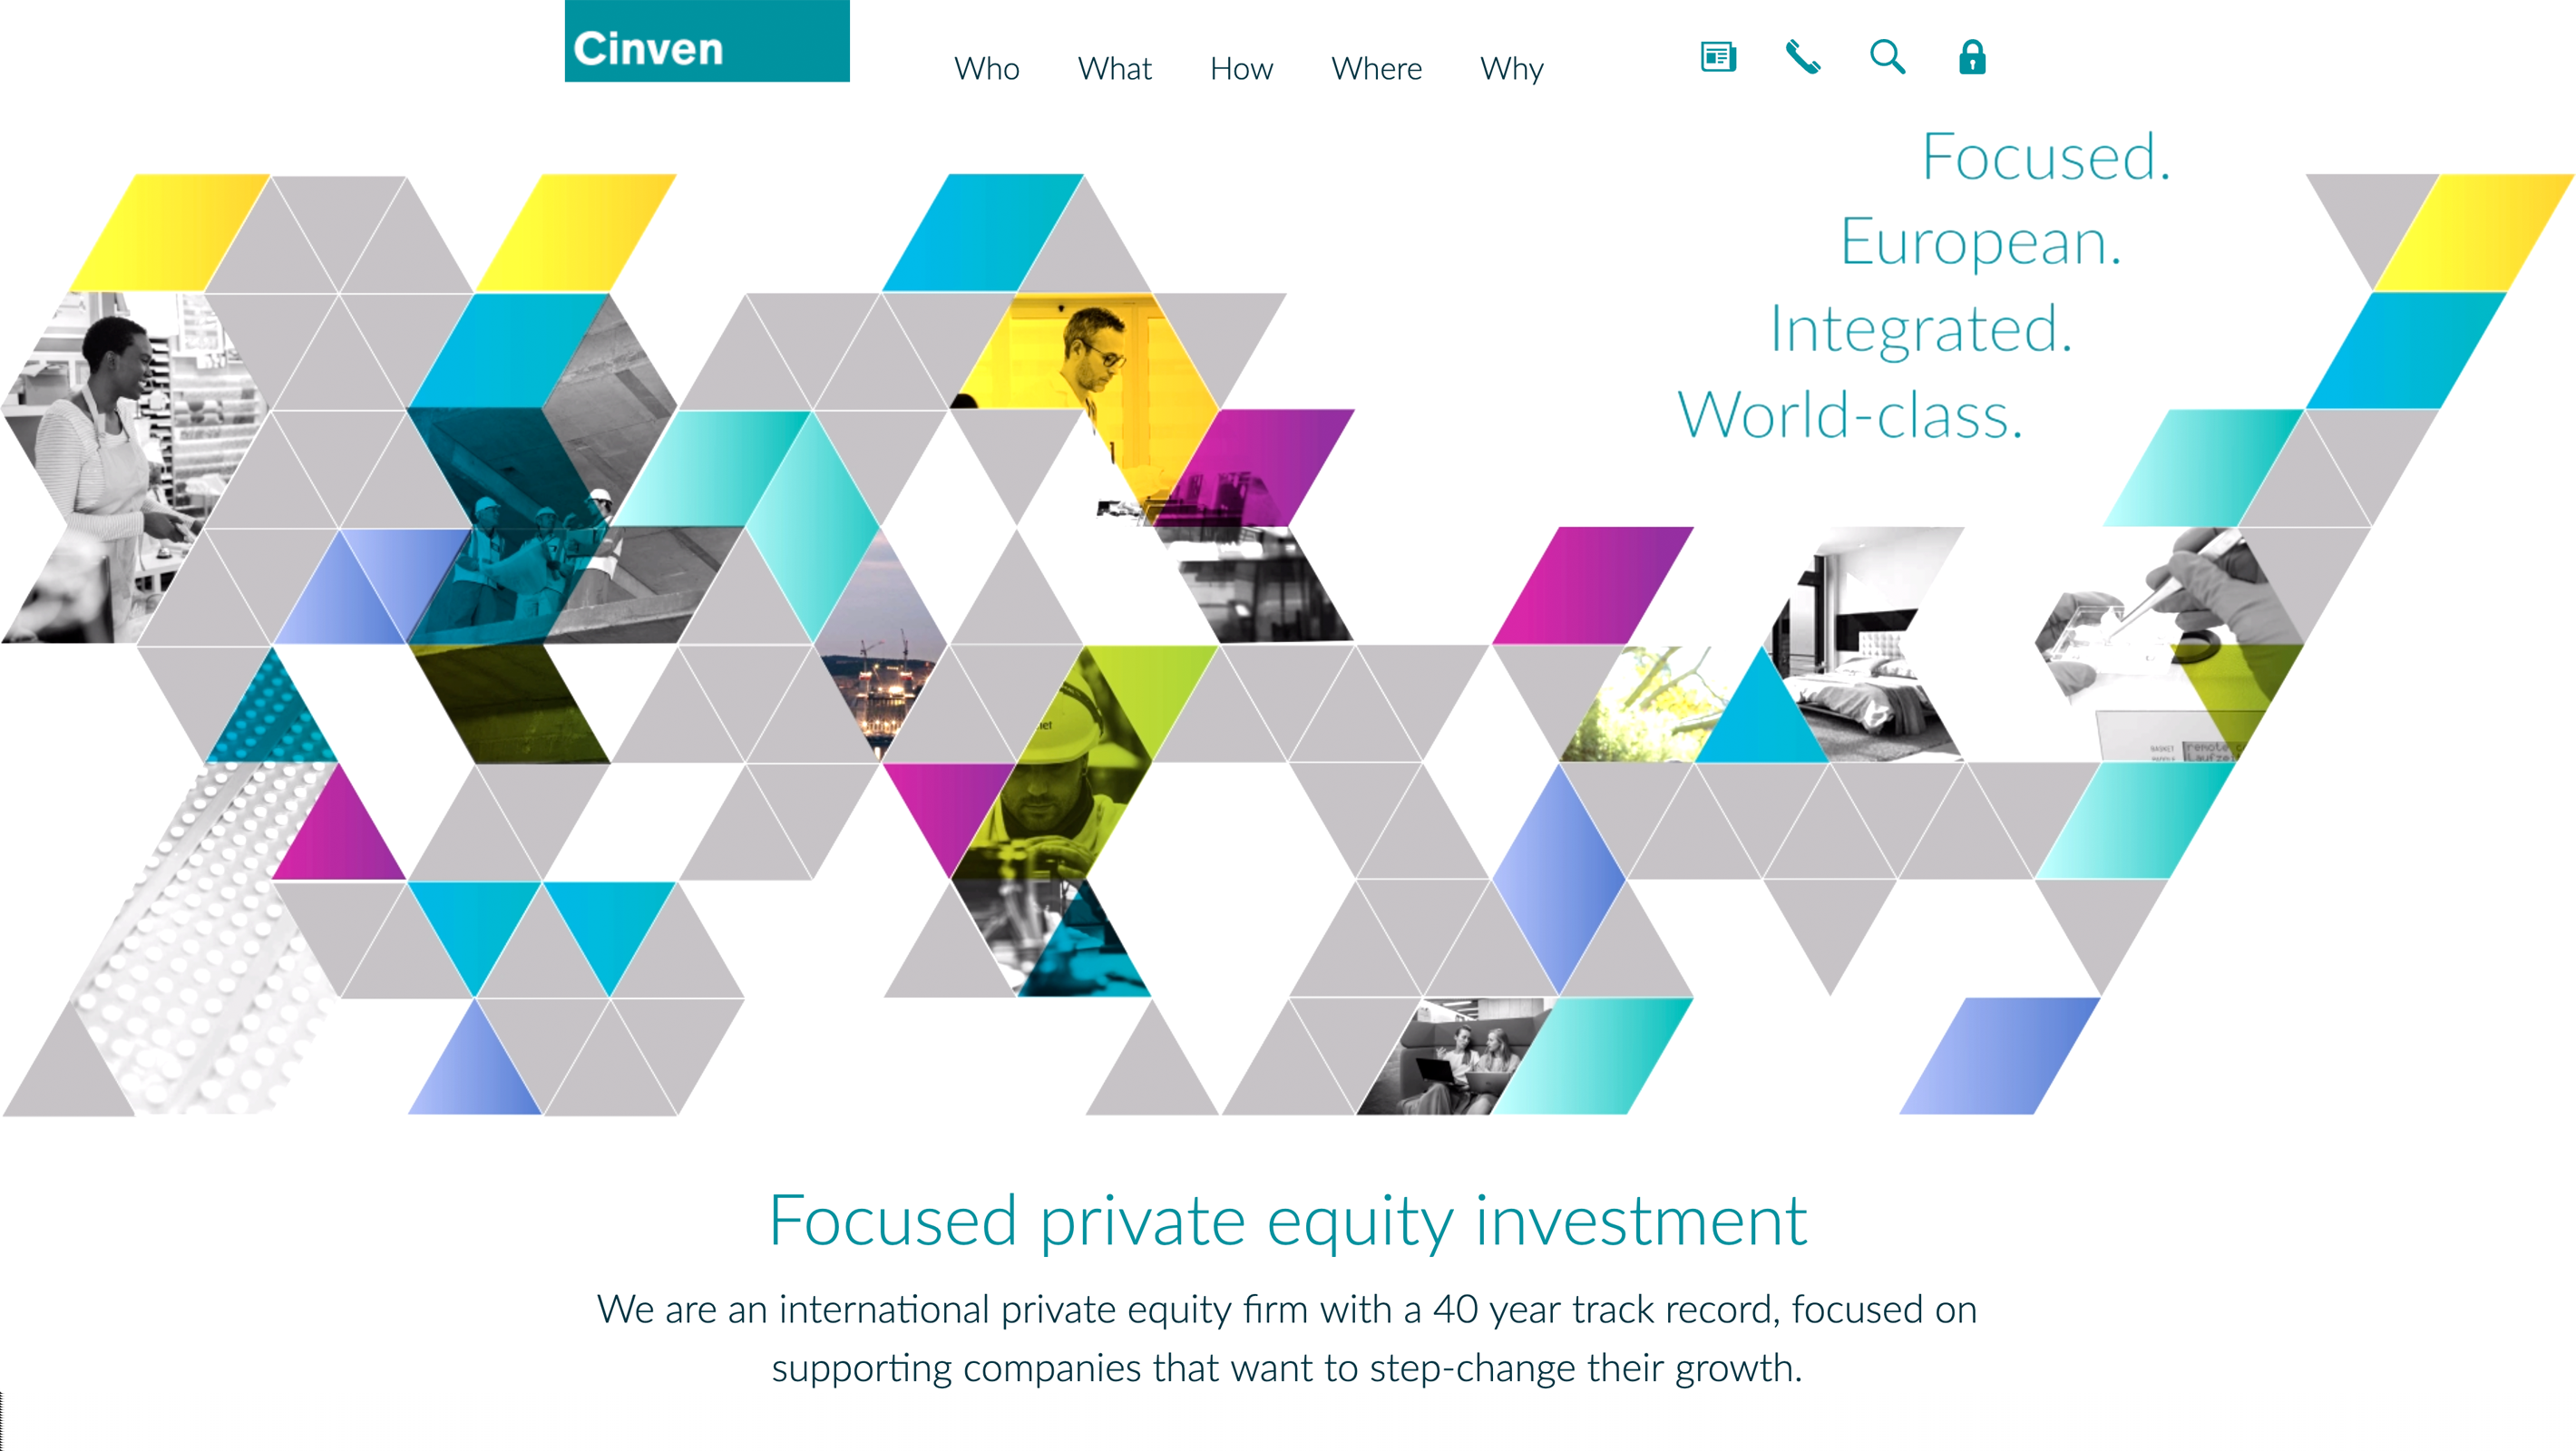 Screenshot of Cinven's website